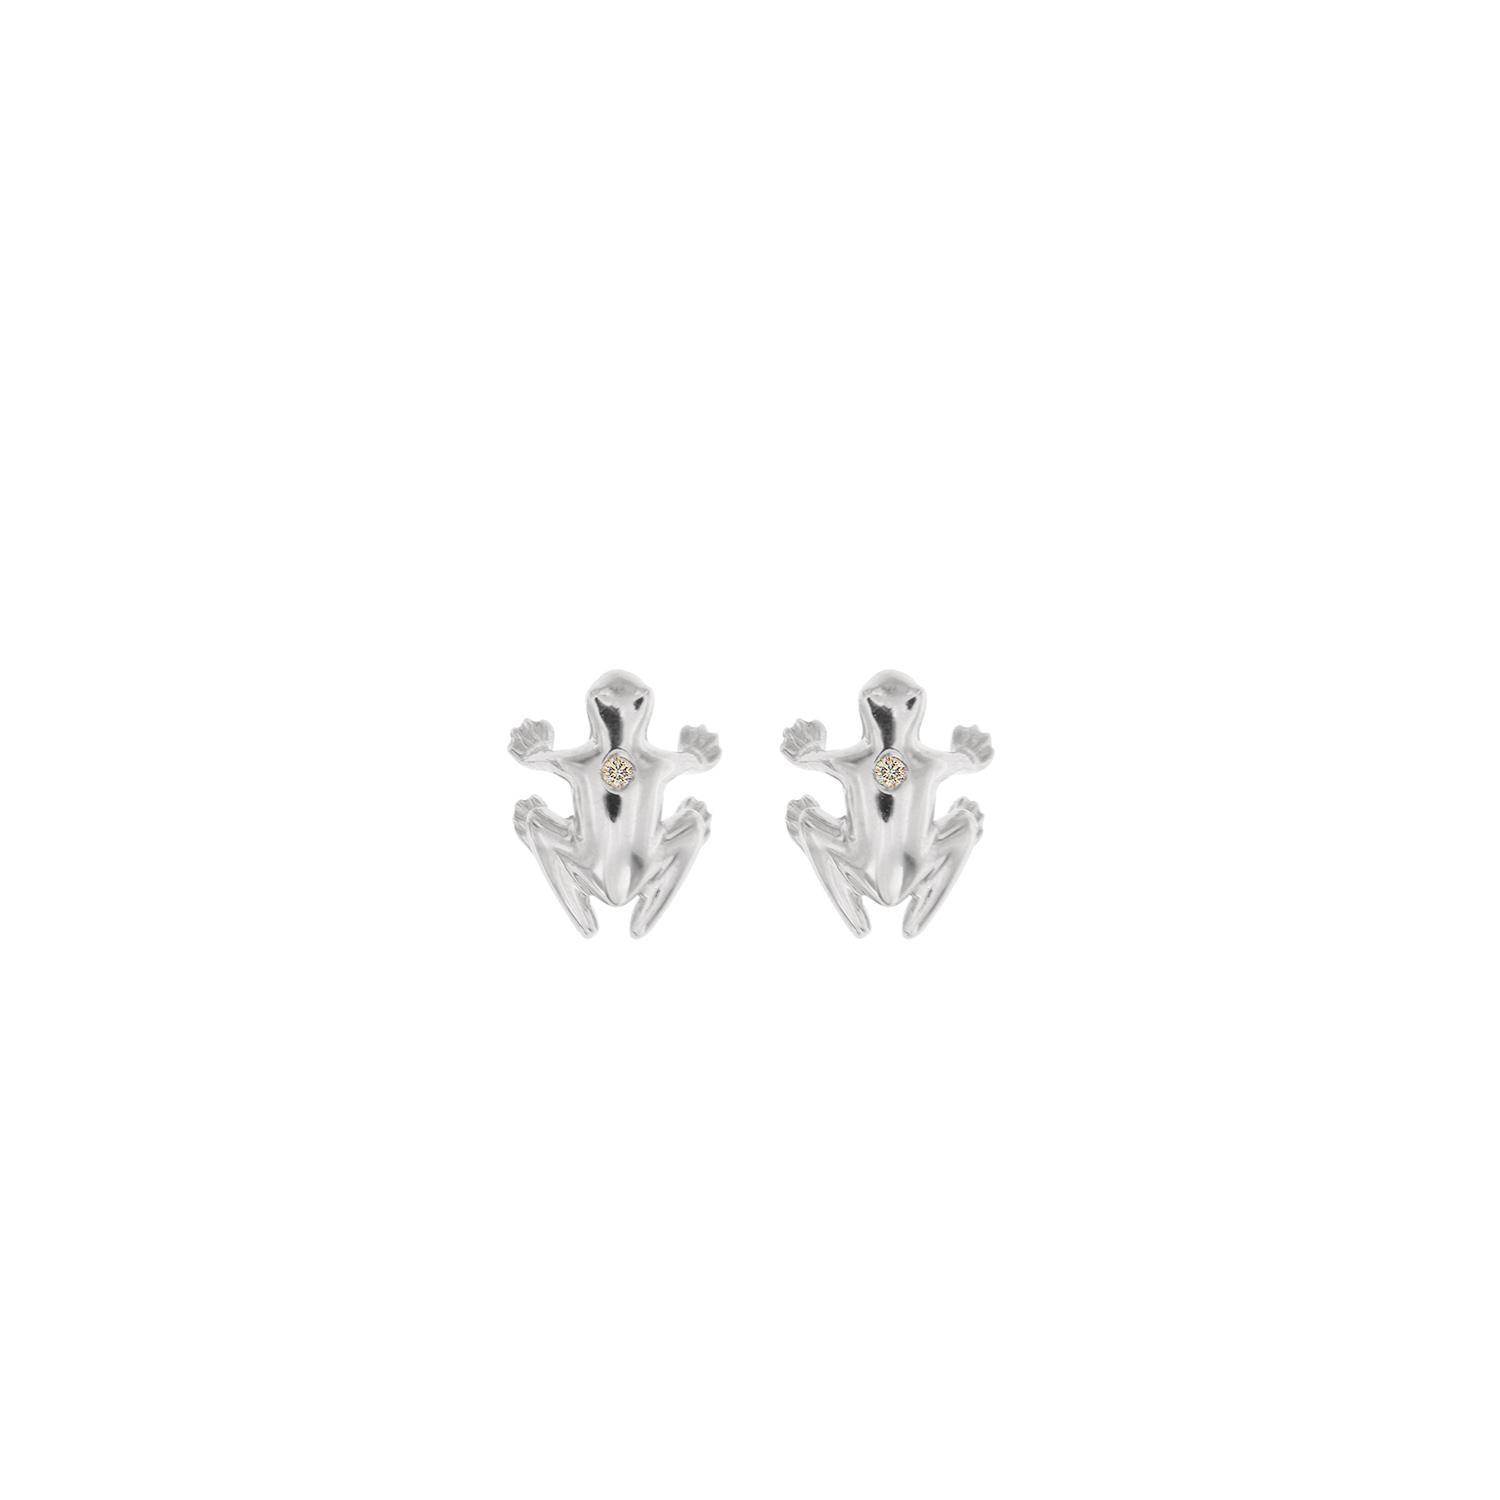 Earrings in 925 silver and diamond